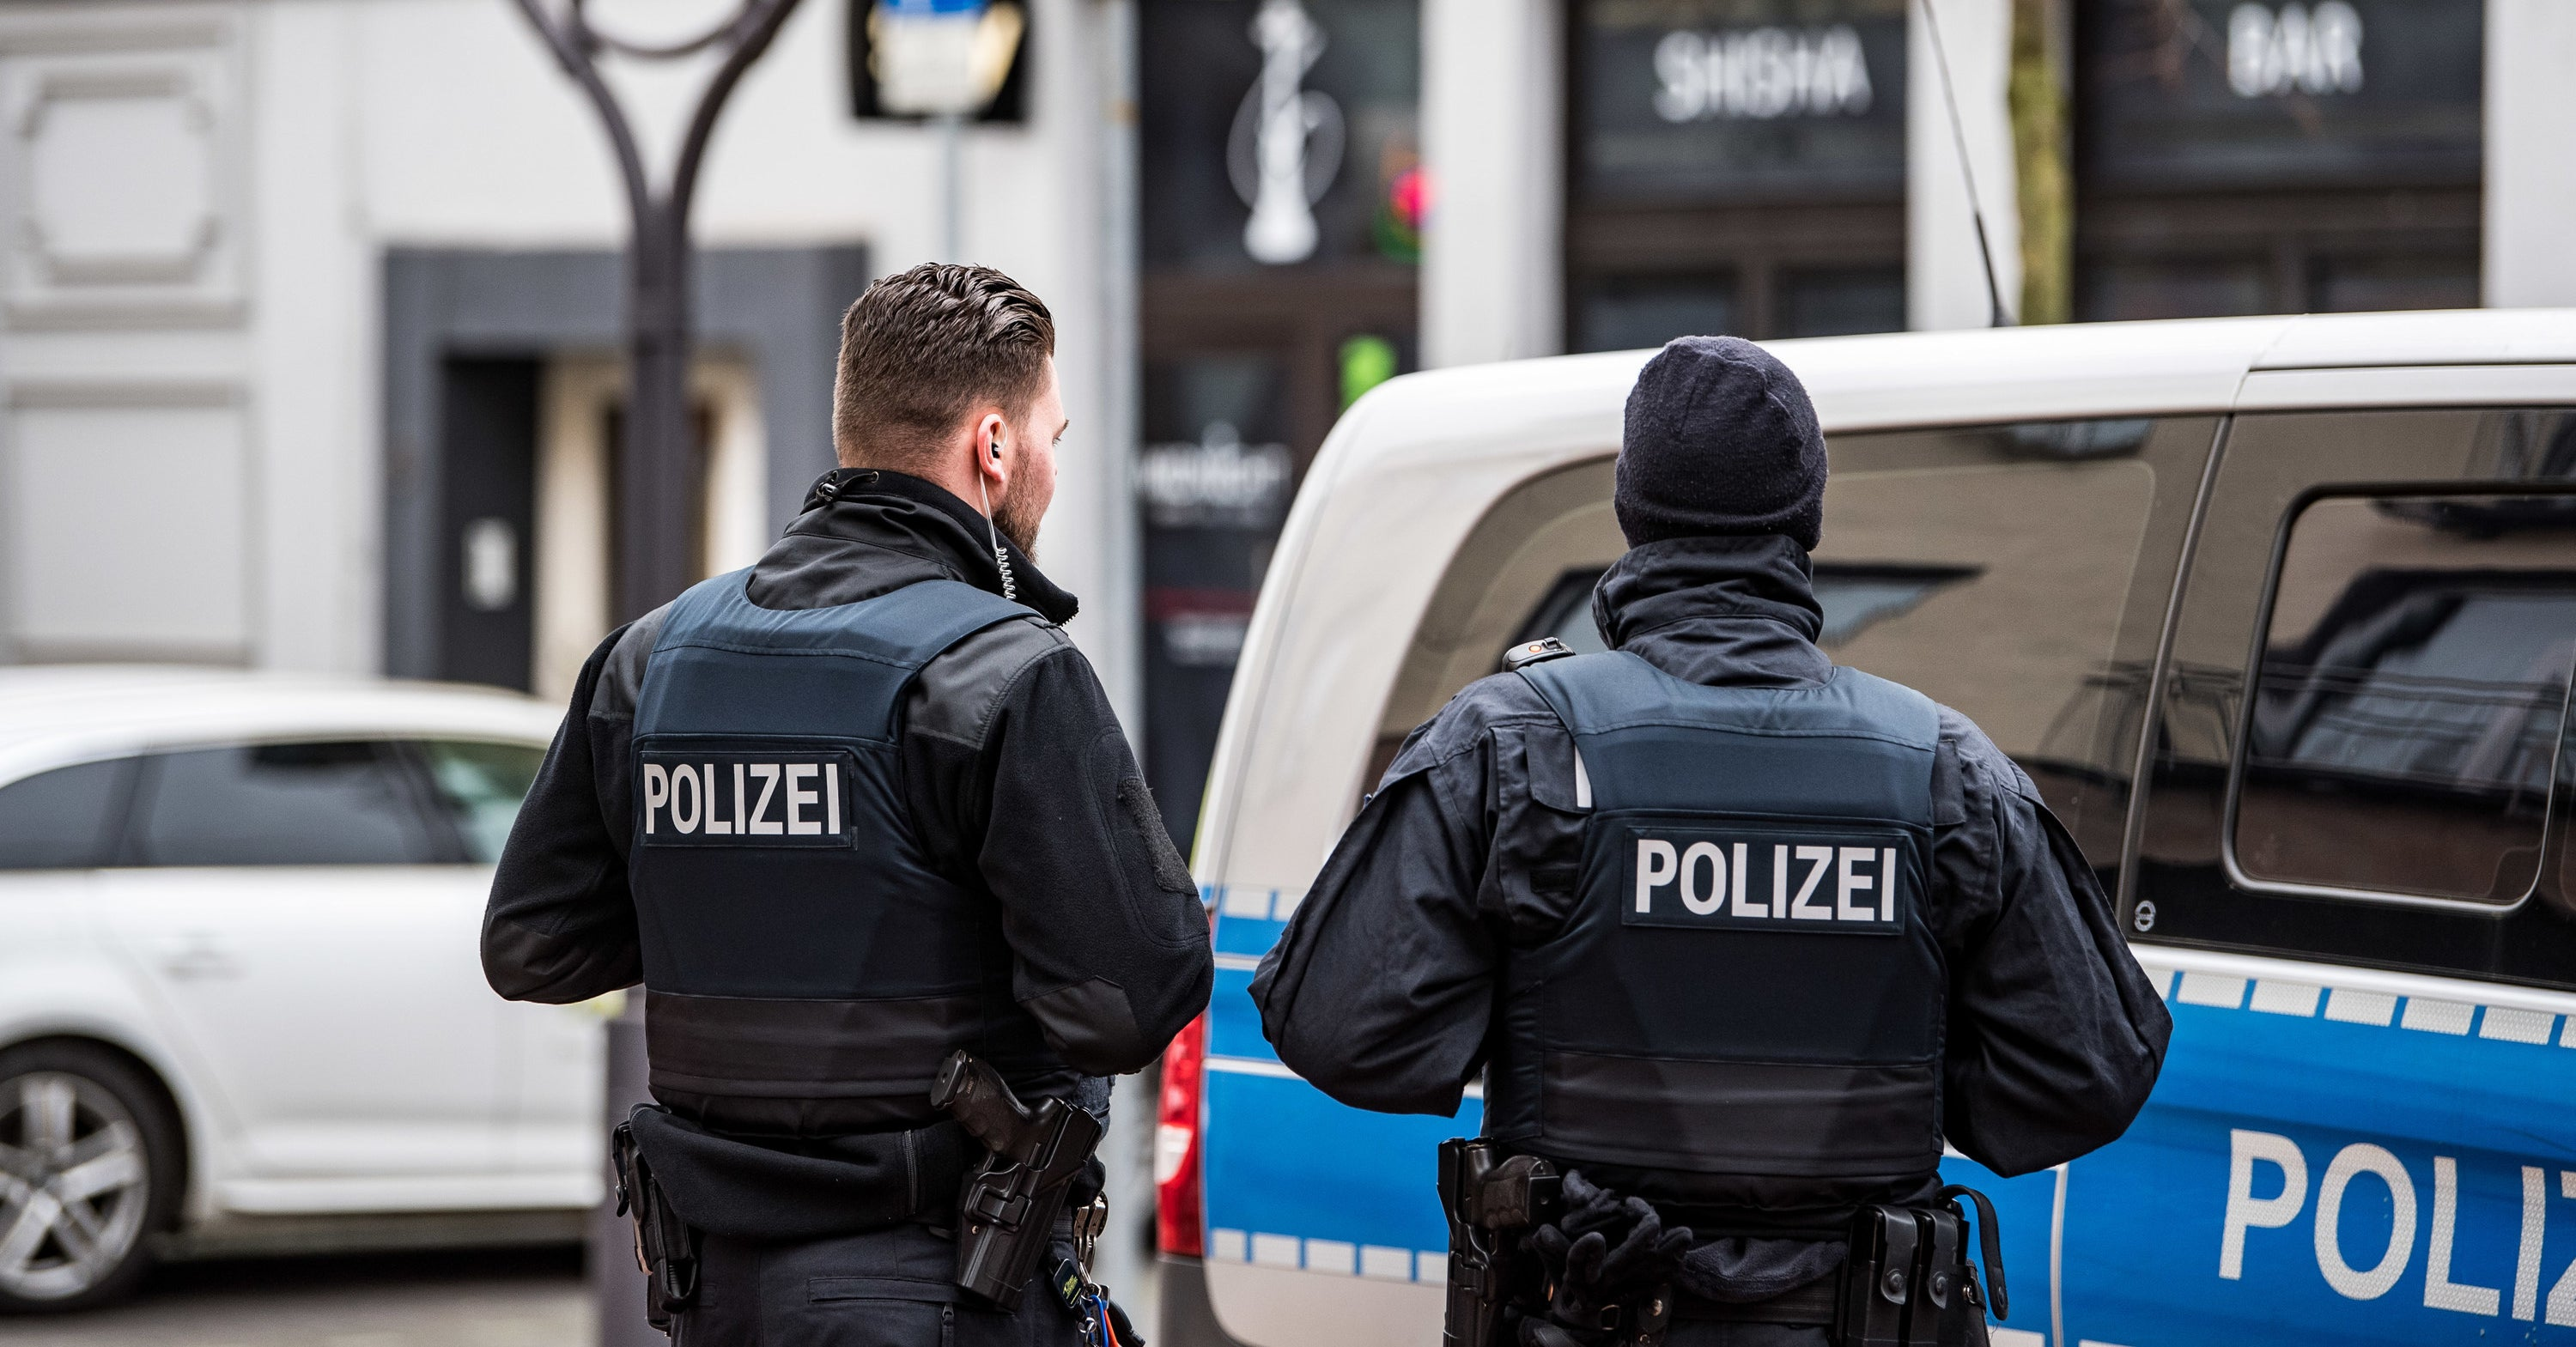 9 People Were Killed In Shootings At Two Hookah Bars In Germany In A Suspected Far-Right Terror Attack